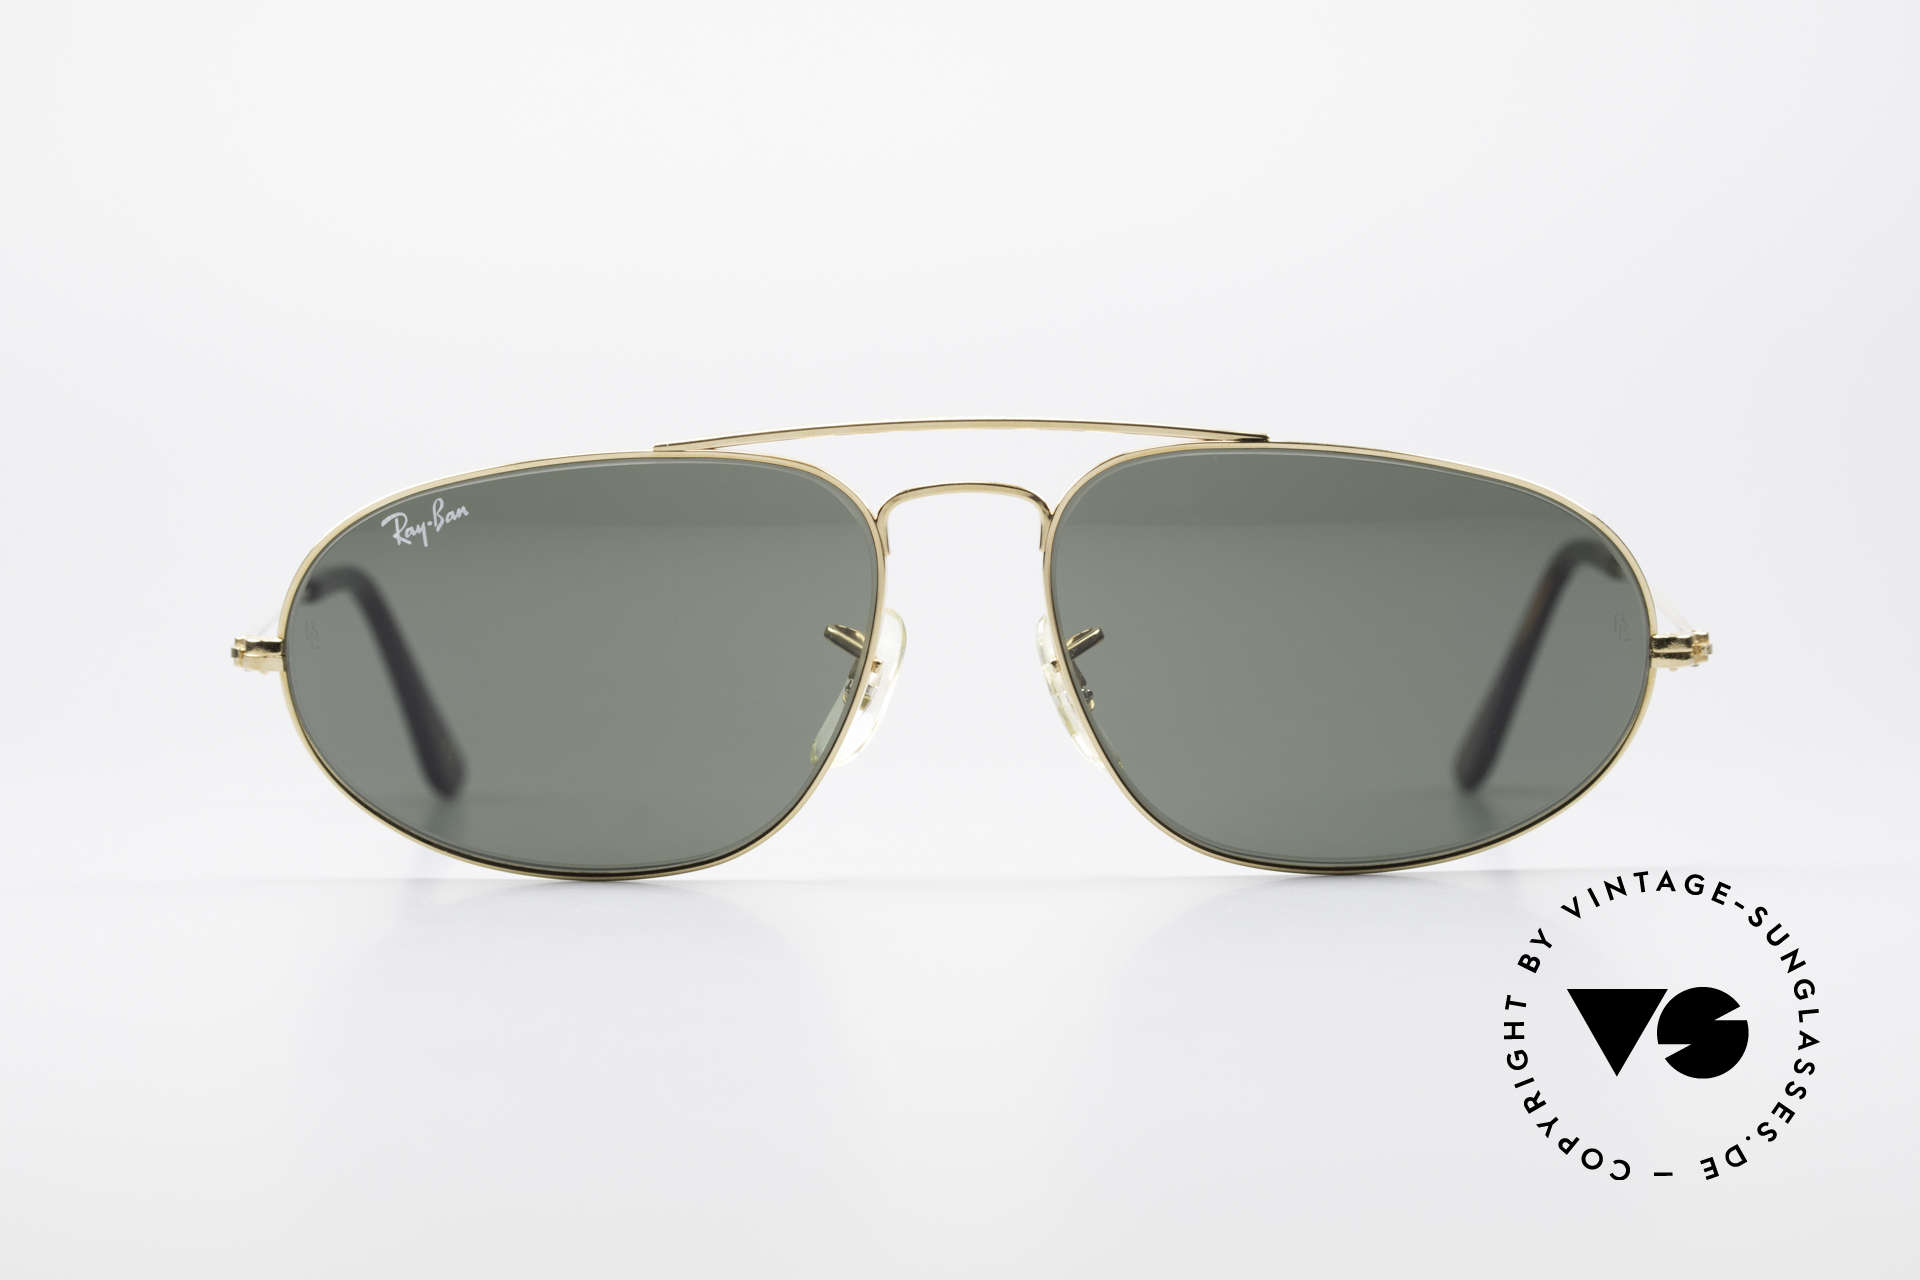 Ray Ban Fashion Metal 5 Extraordinary Aviator Shades, the modified 'aviator design' by Ray Ban, USA, Made for Men